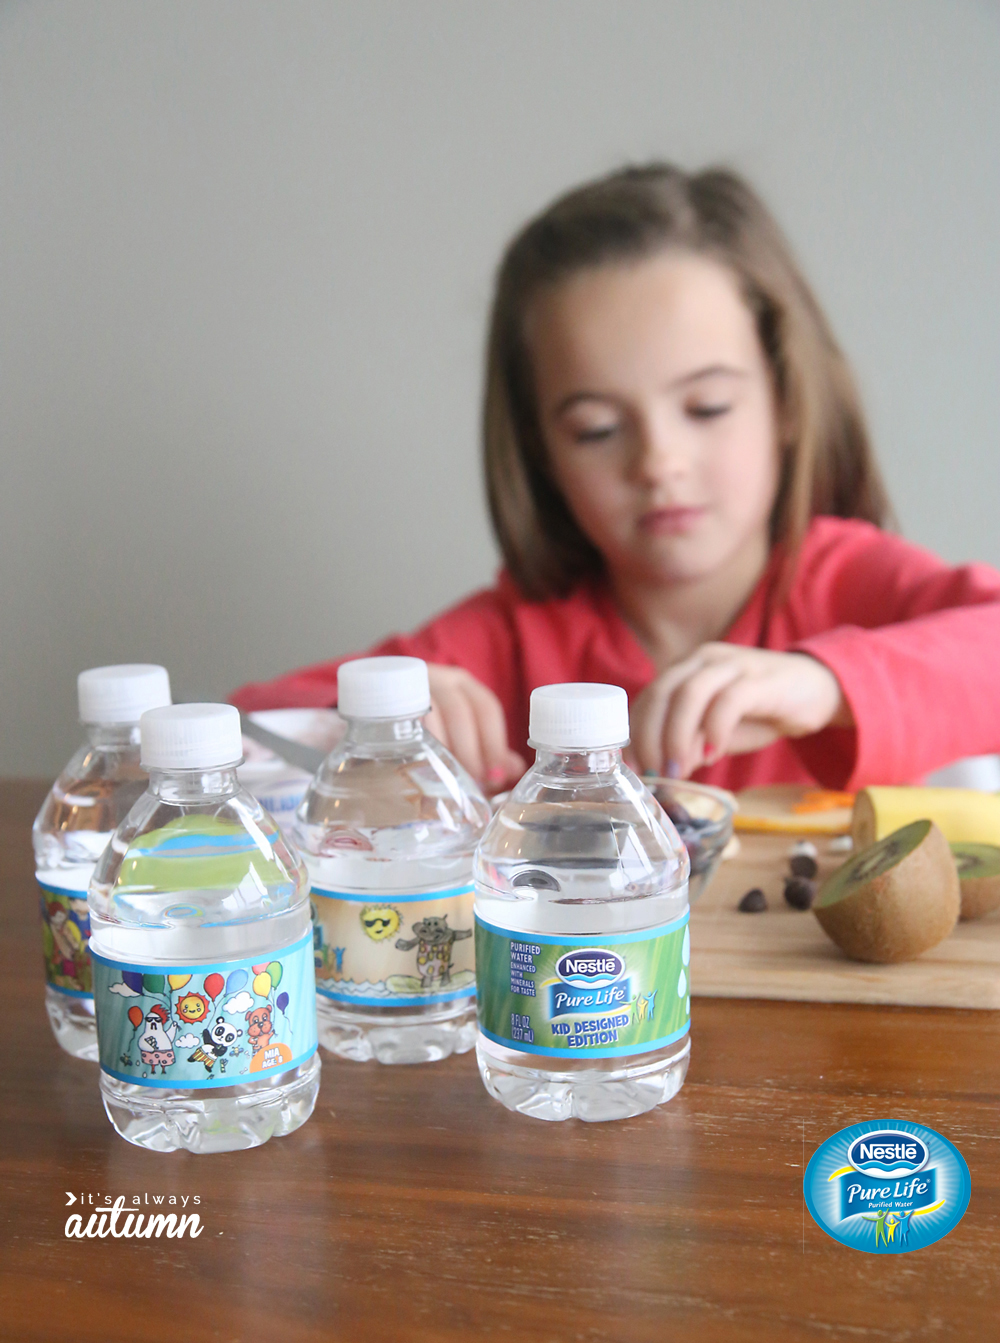 A little girl sitting at a table with water bottles